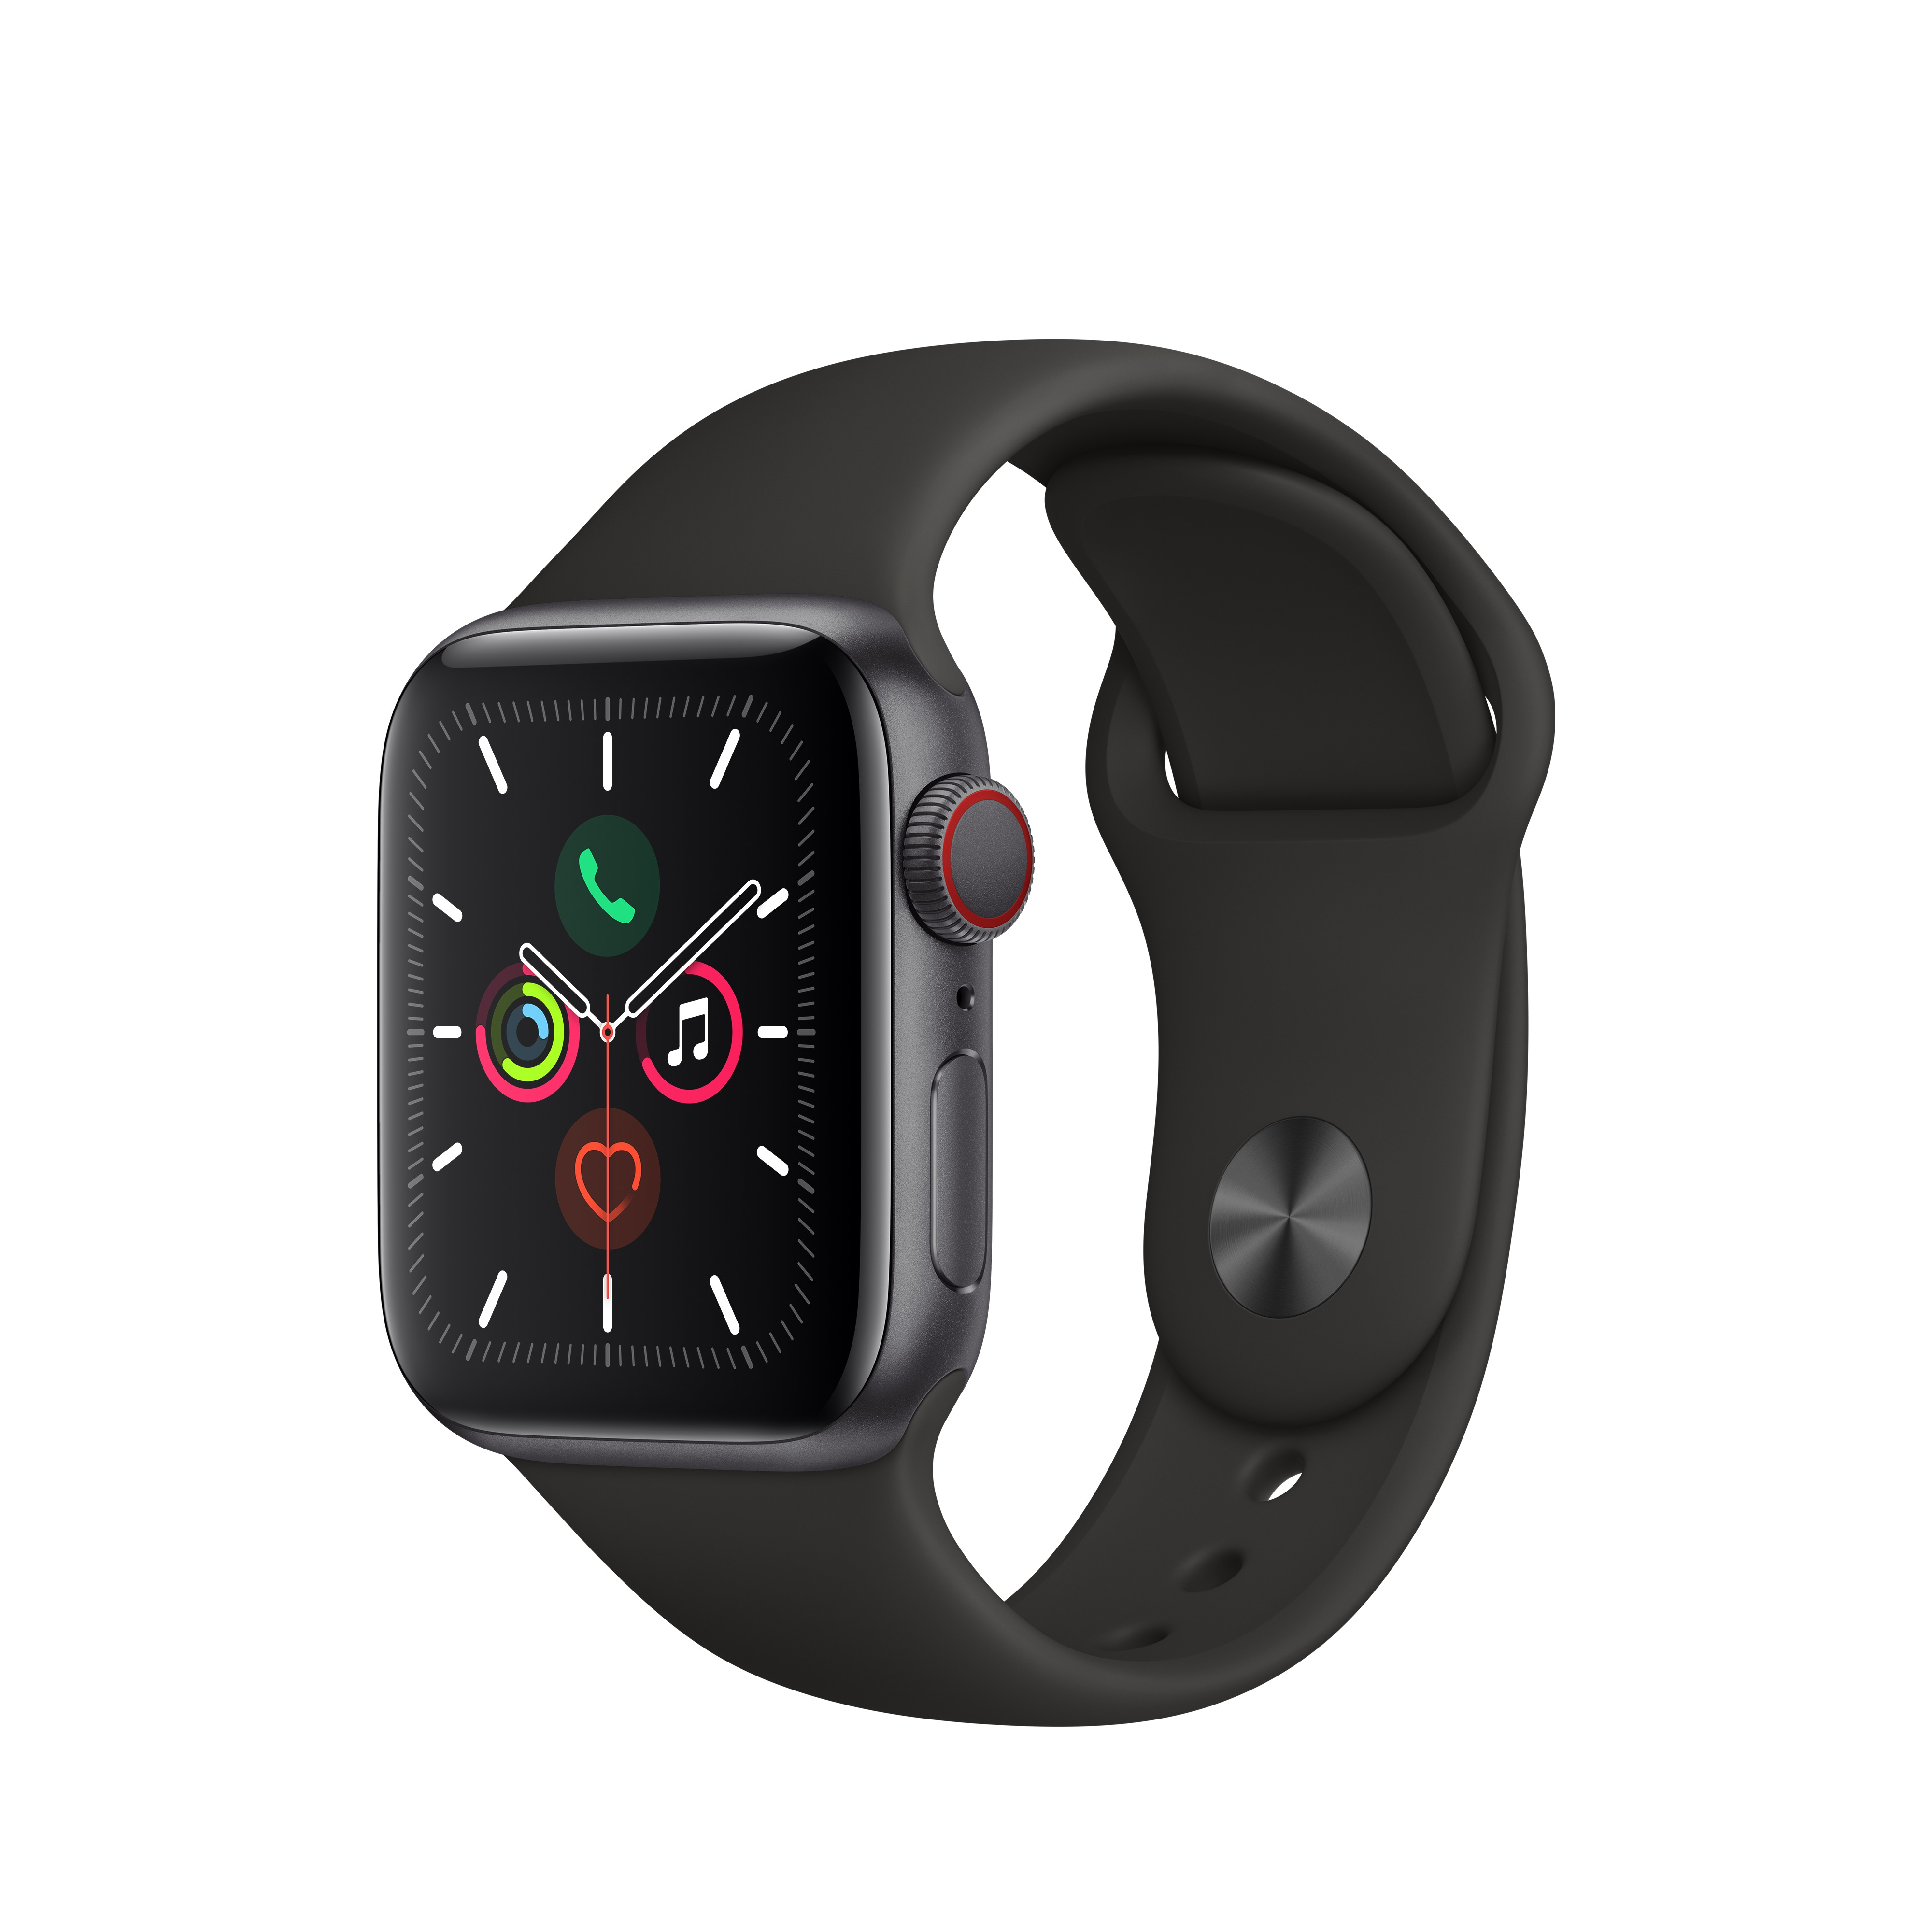 Apple Watch Series 5 GPS + Cellular, 40mm Space Gray Aluminum Case with Black Sport Band – S/M & M/L